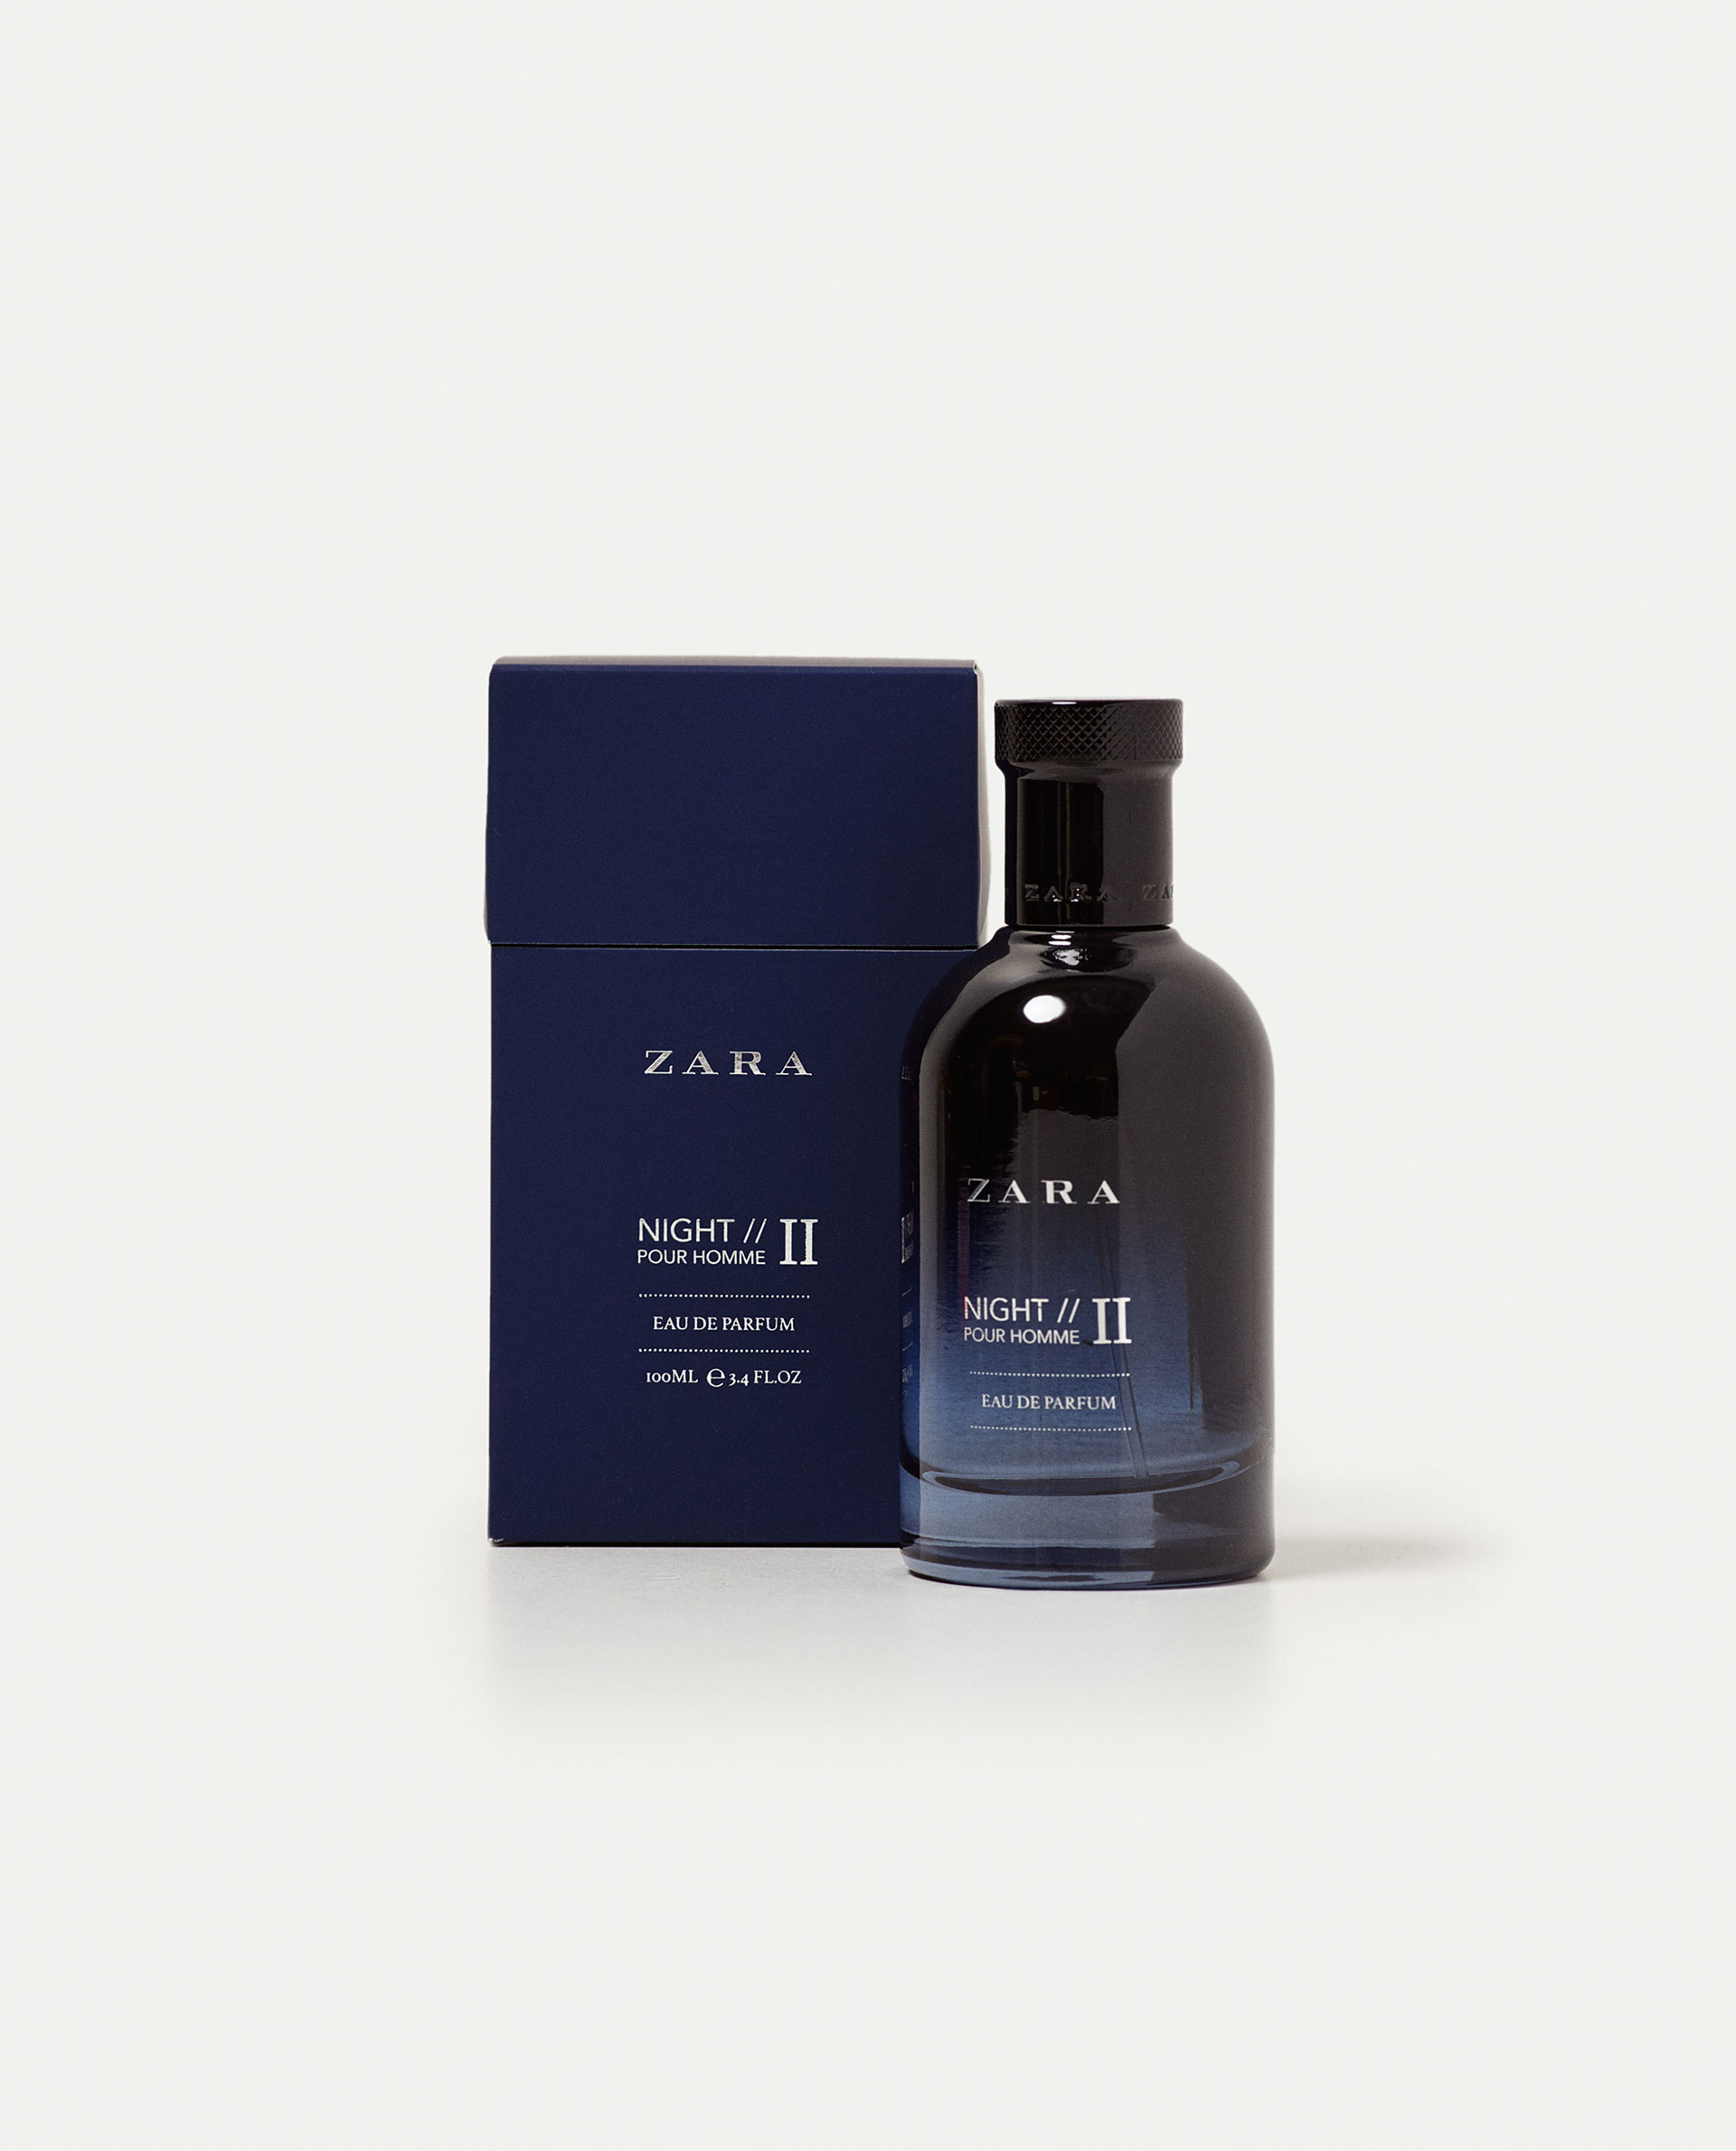 Zara night pour homme ii zara cologne a new fragrance for men 2017 - Prix parfum zara homme ...